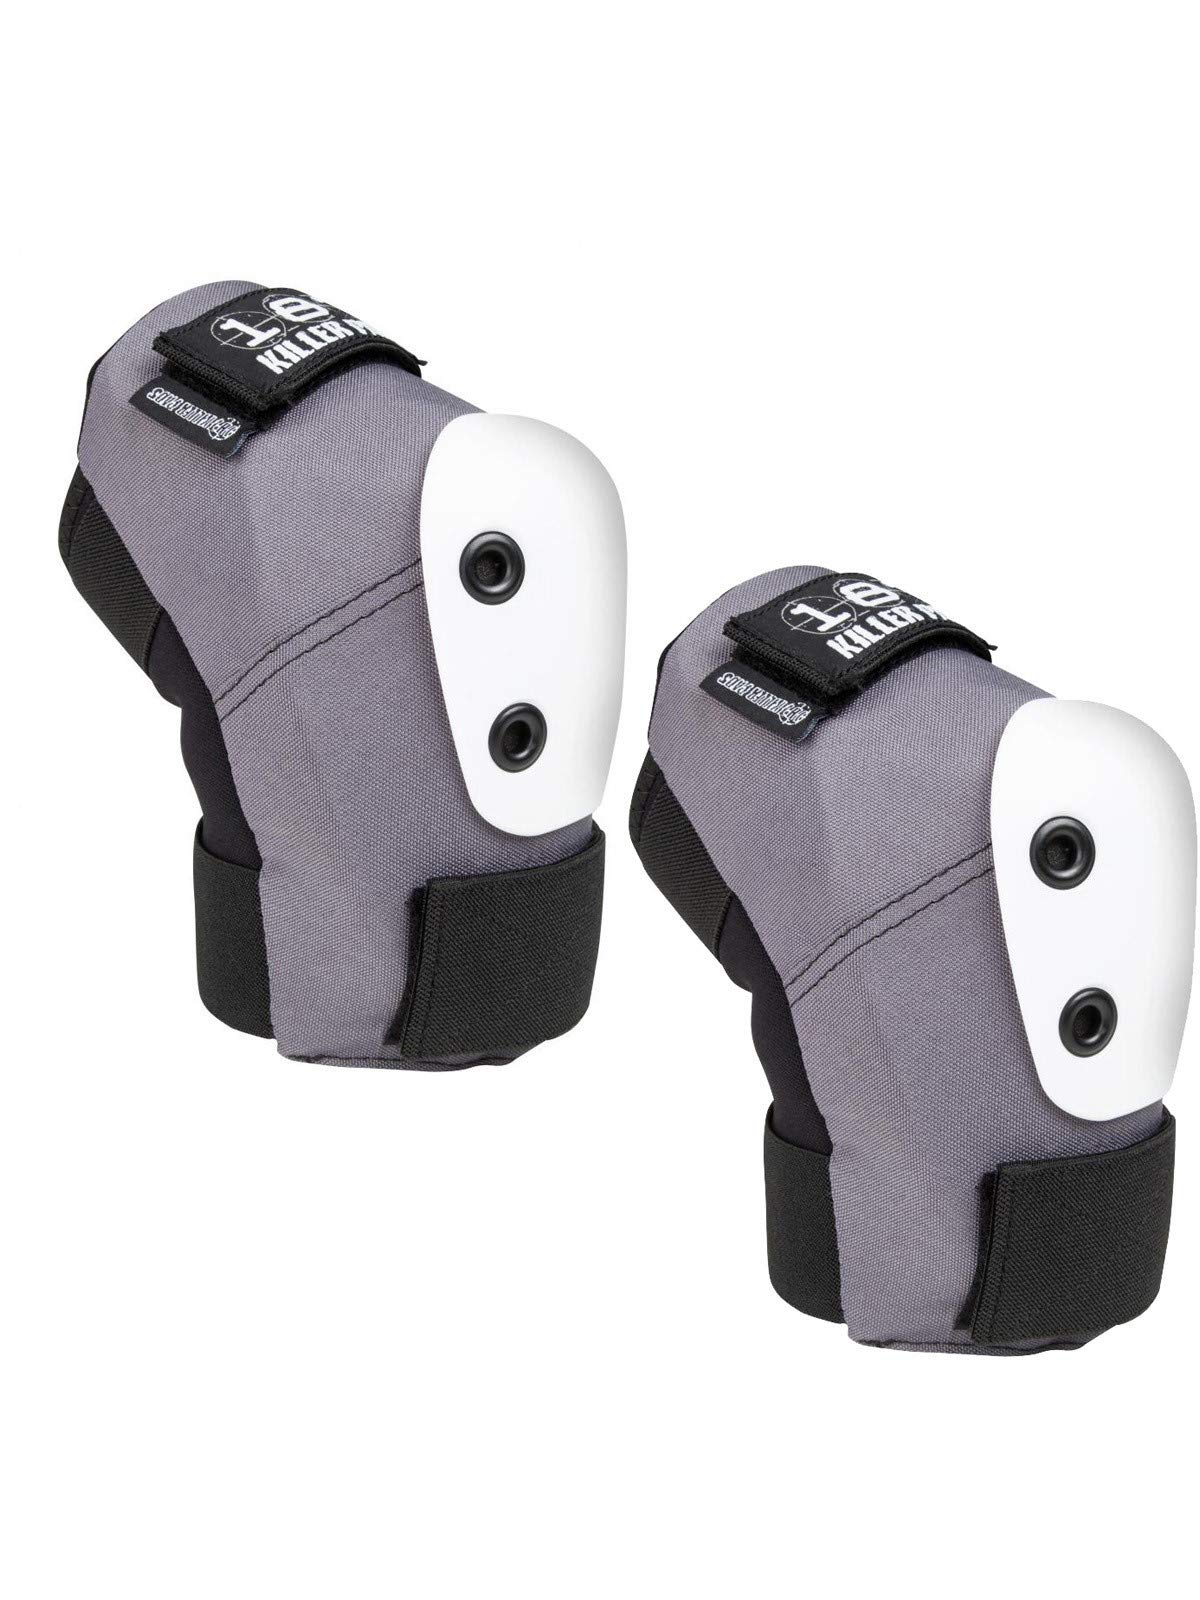 187 Killer Pads Pro Elbow Pads - Grey/White - Small